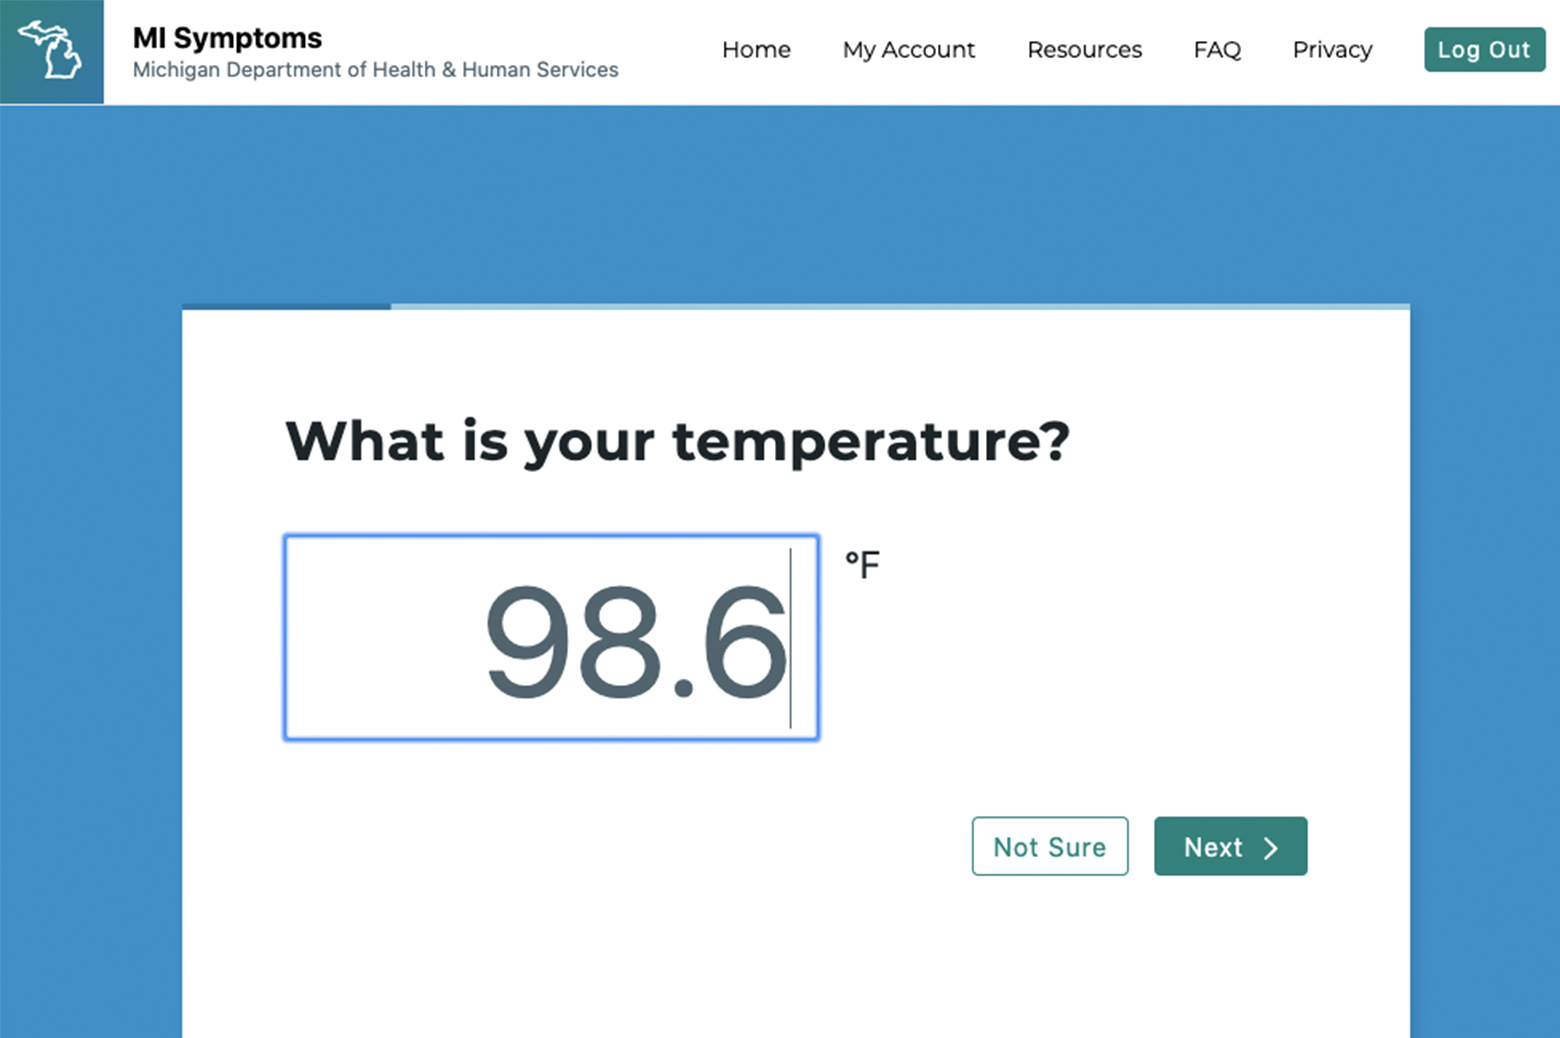 An app prompt asking for the user's temperature